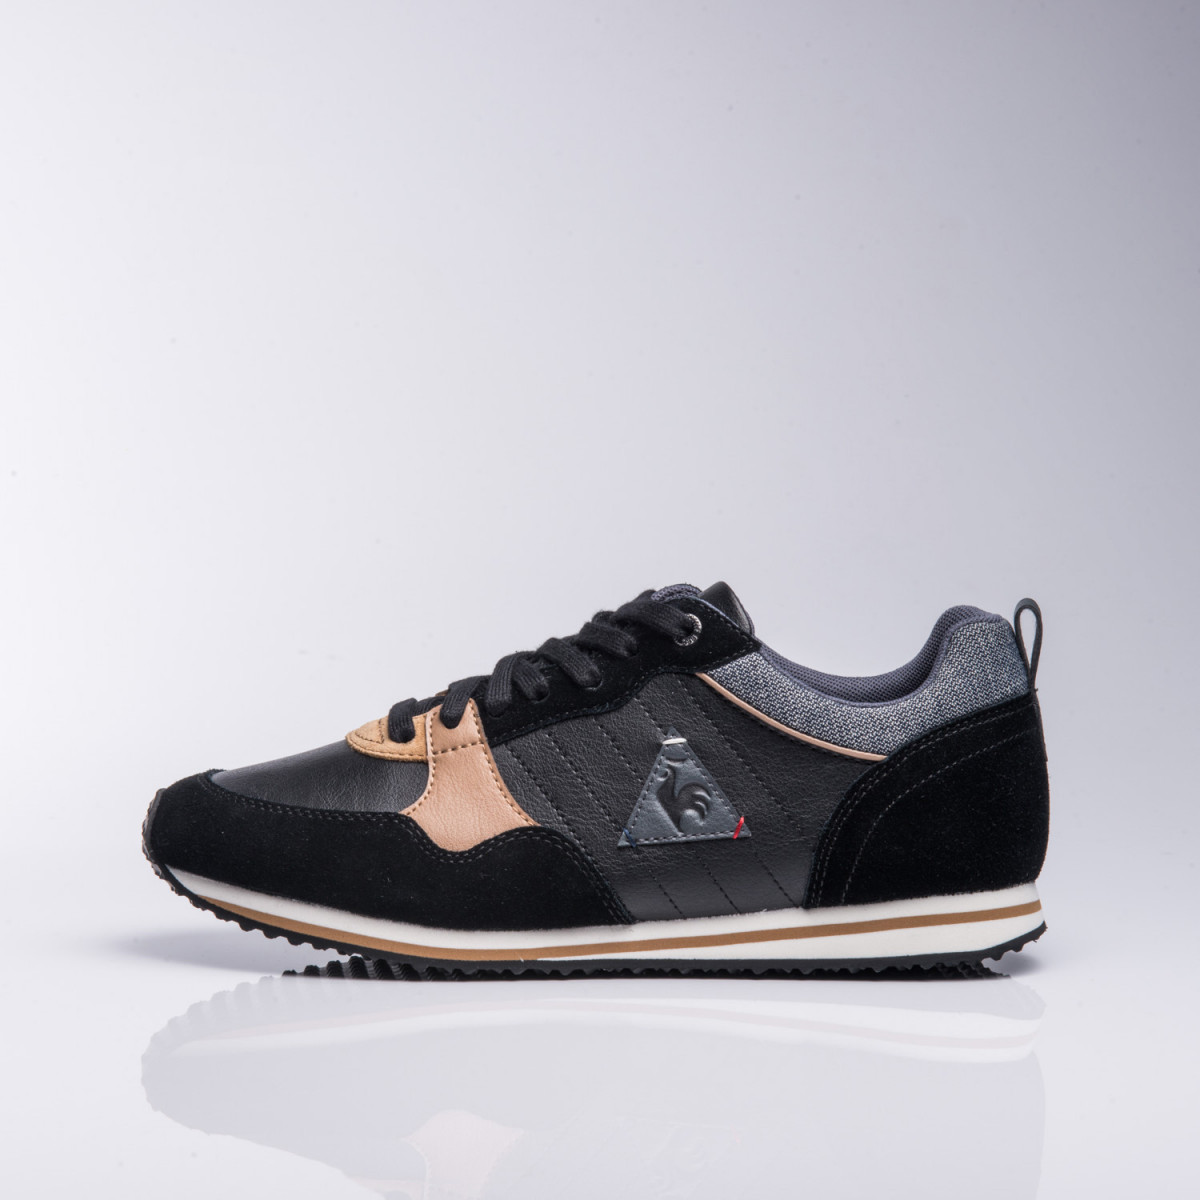 Zapatillas Le Coq Sportif Bolivar Craft Lea